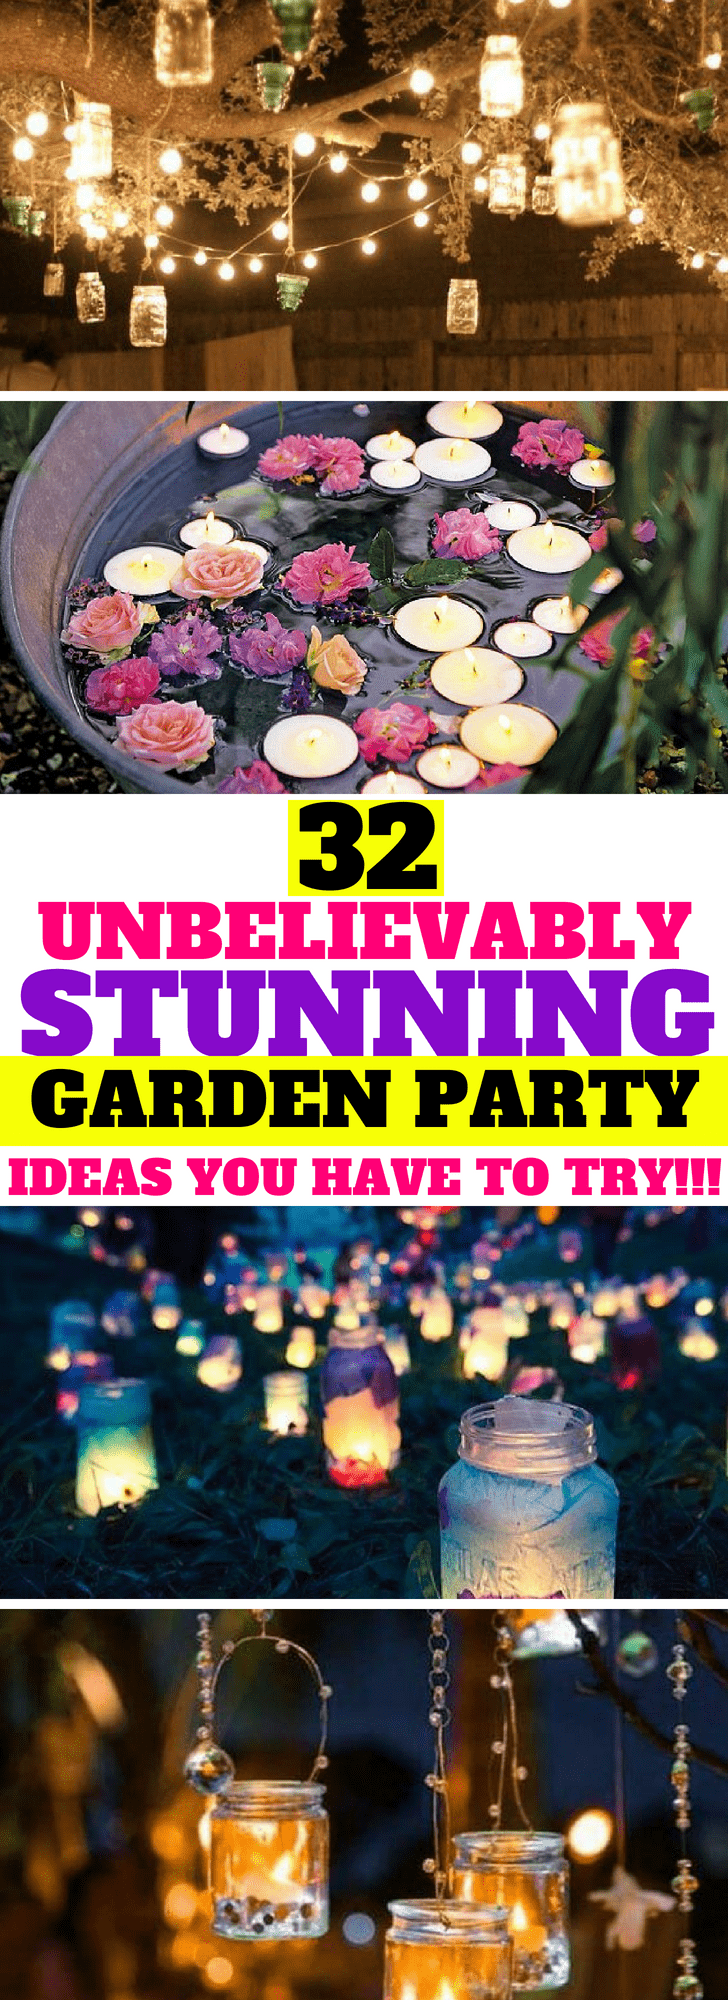 32 stunning summer party ideas you need to try #gardenparty #outdoorparty #bbq